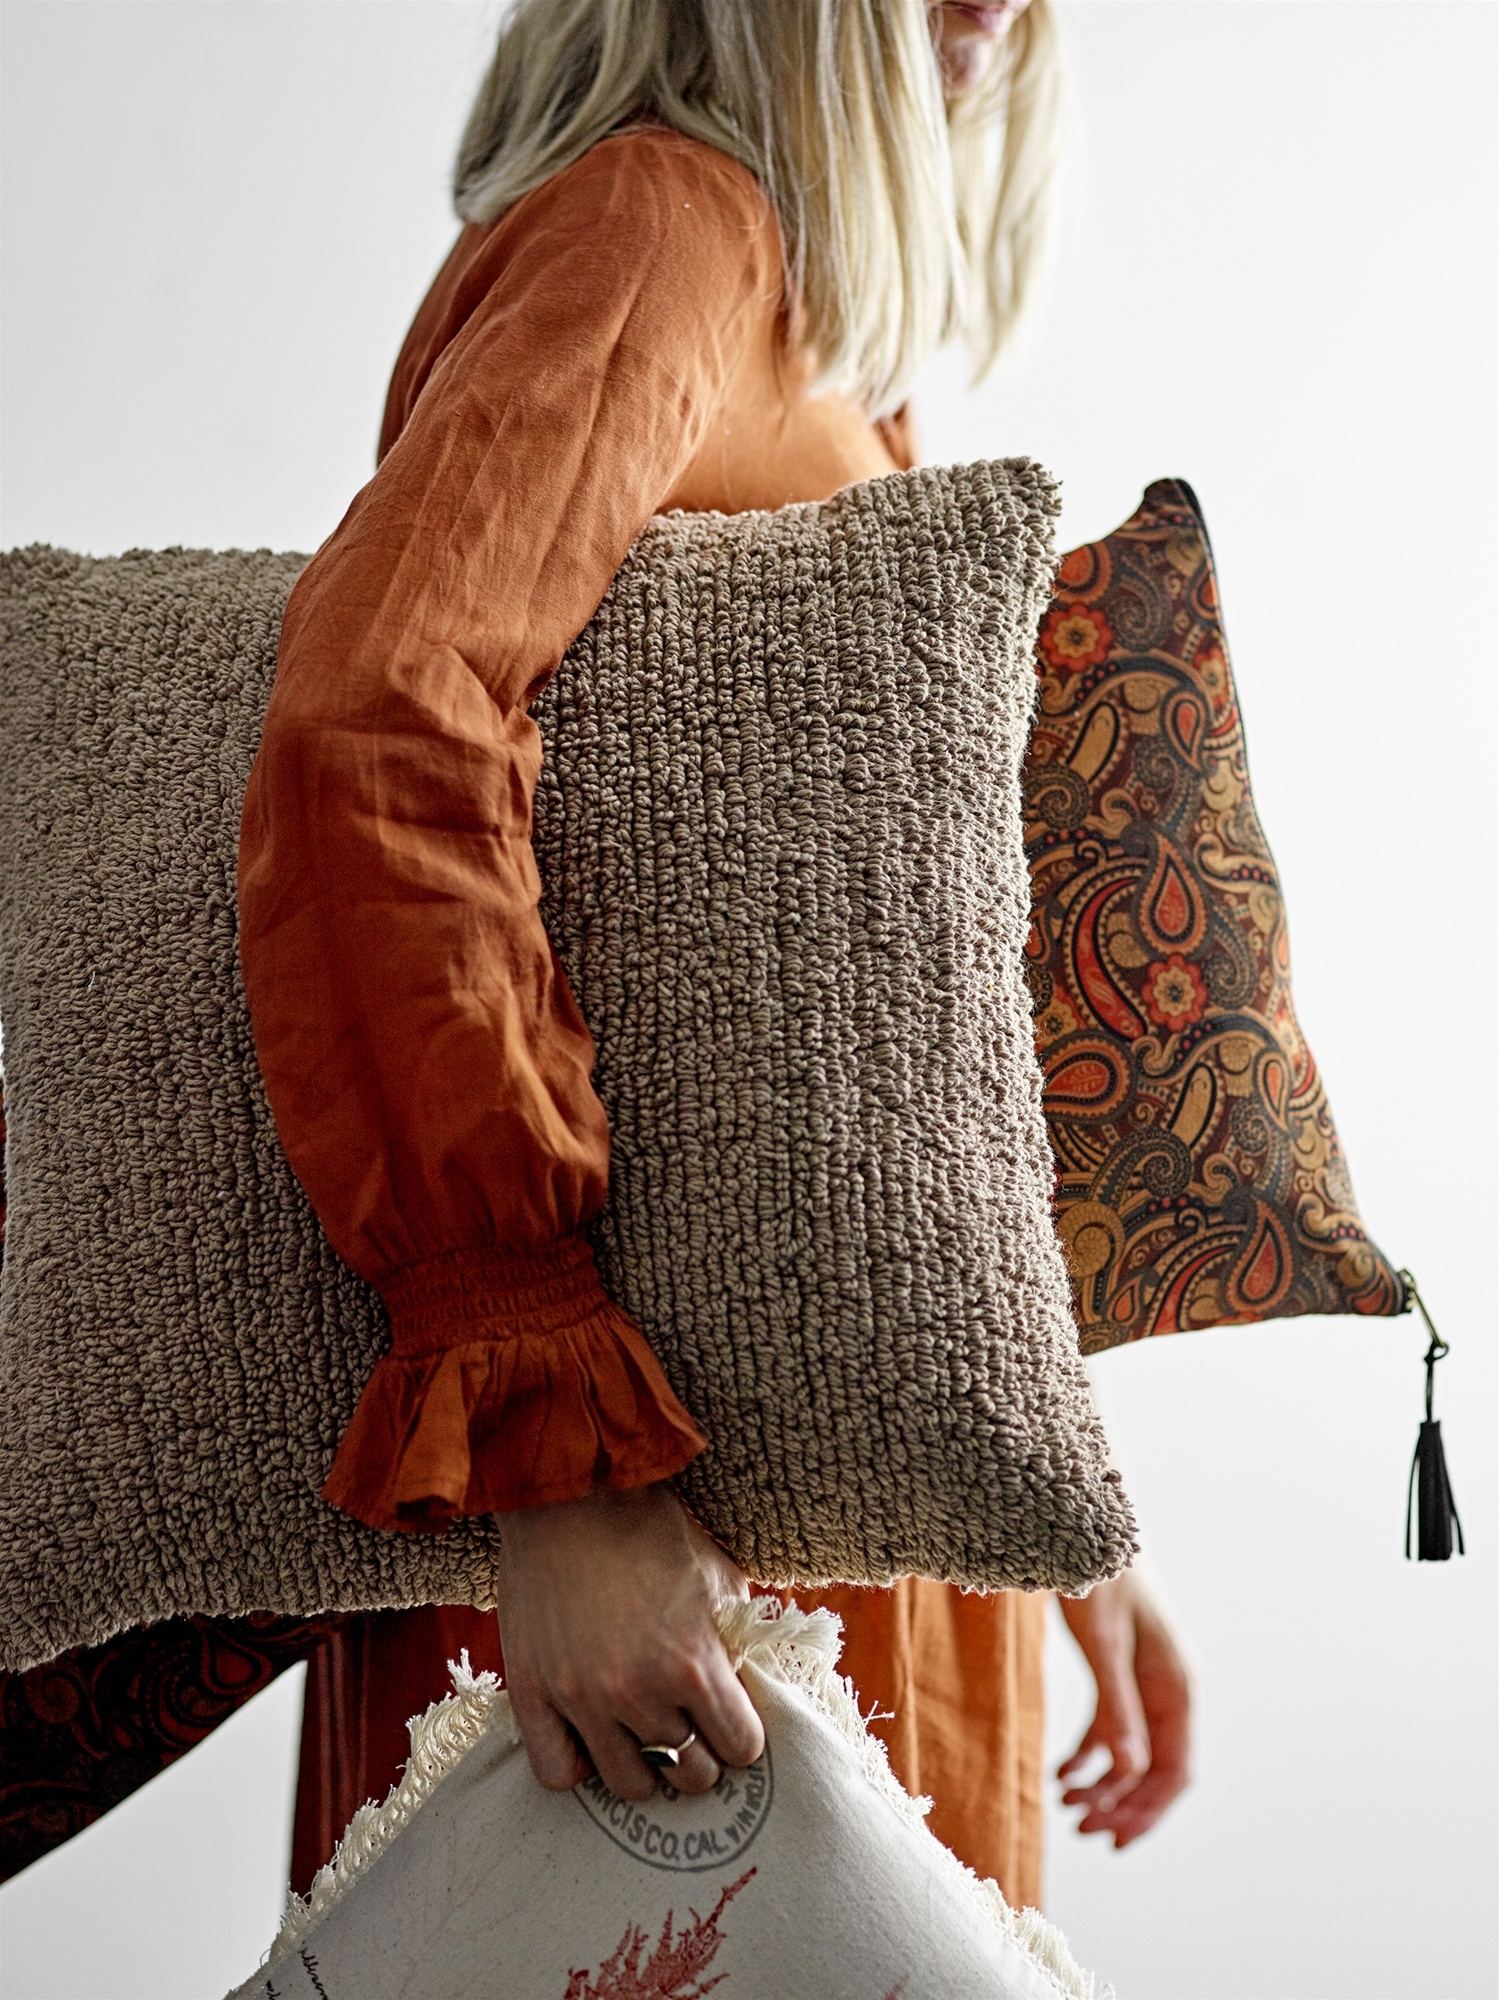 Bloomingville Cushion - brown - L45xW45cm - Bloomingville